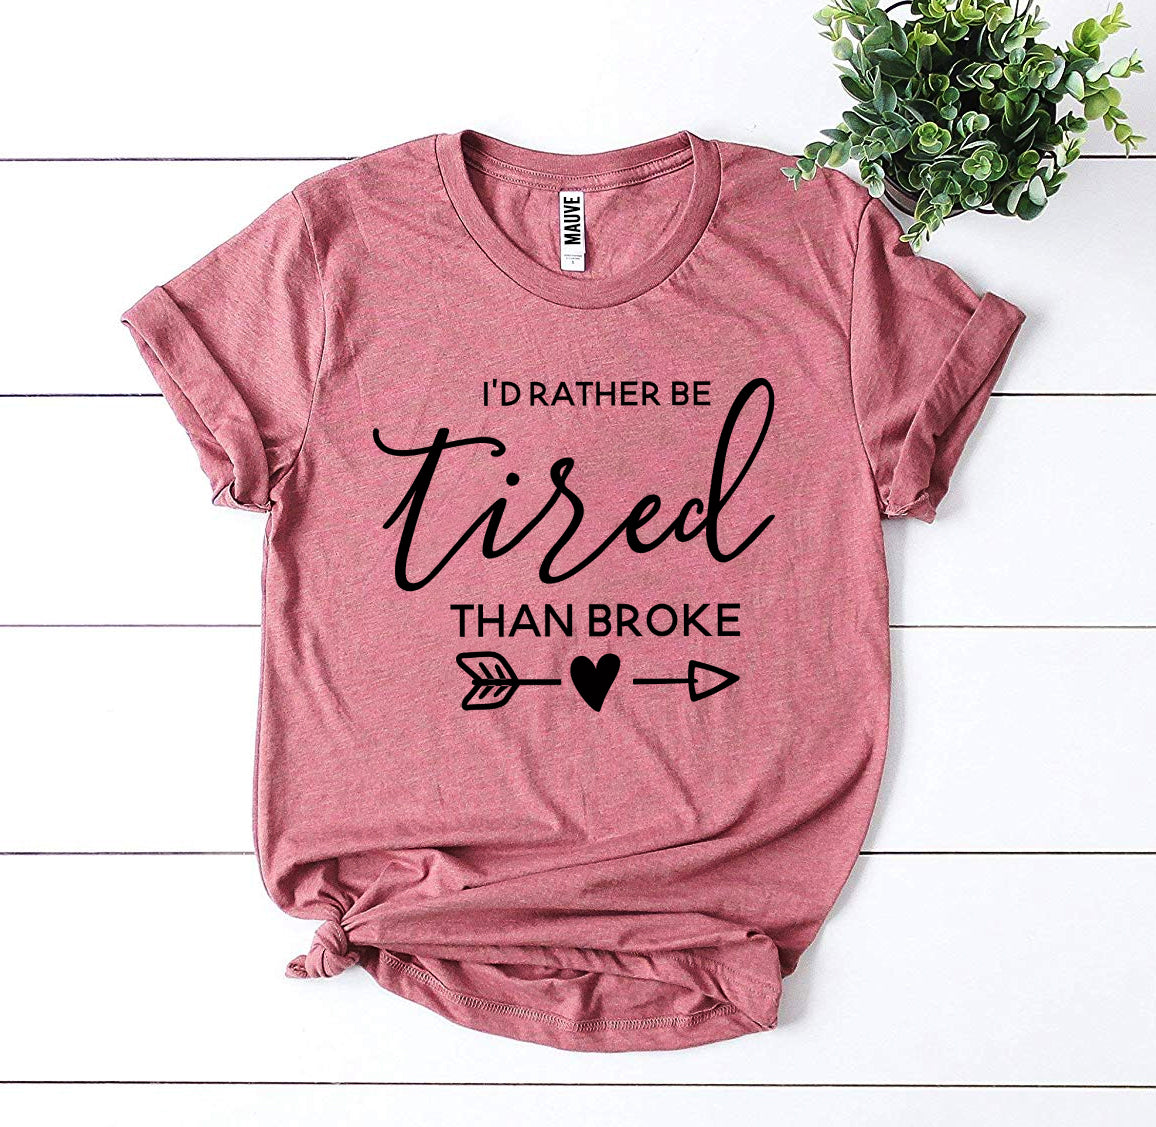 I'd Rather Be Tired Than Broke T-shirt